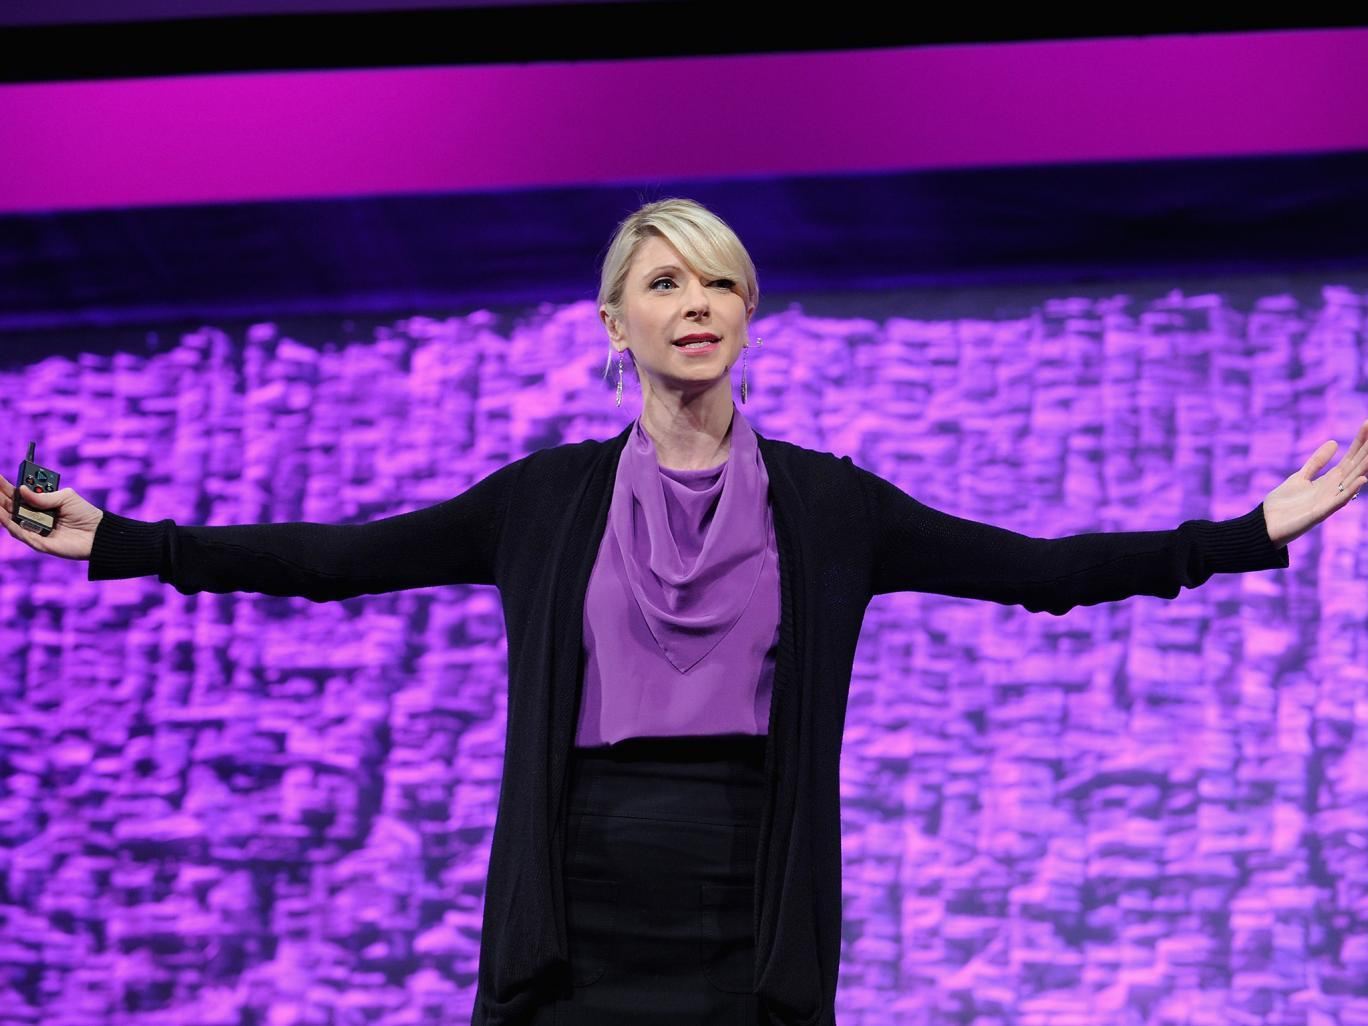 A Harvard psychologist reveals the biggest reason people don't achieve their goals